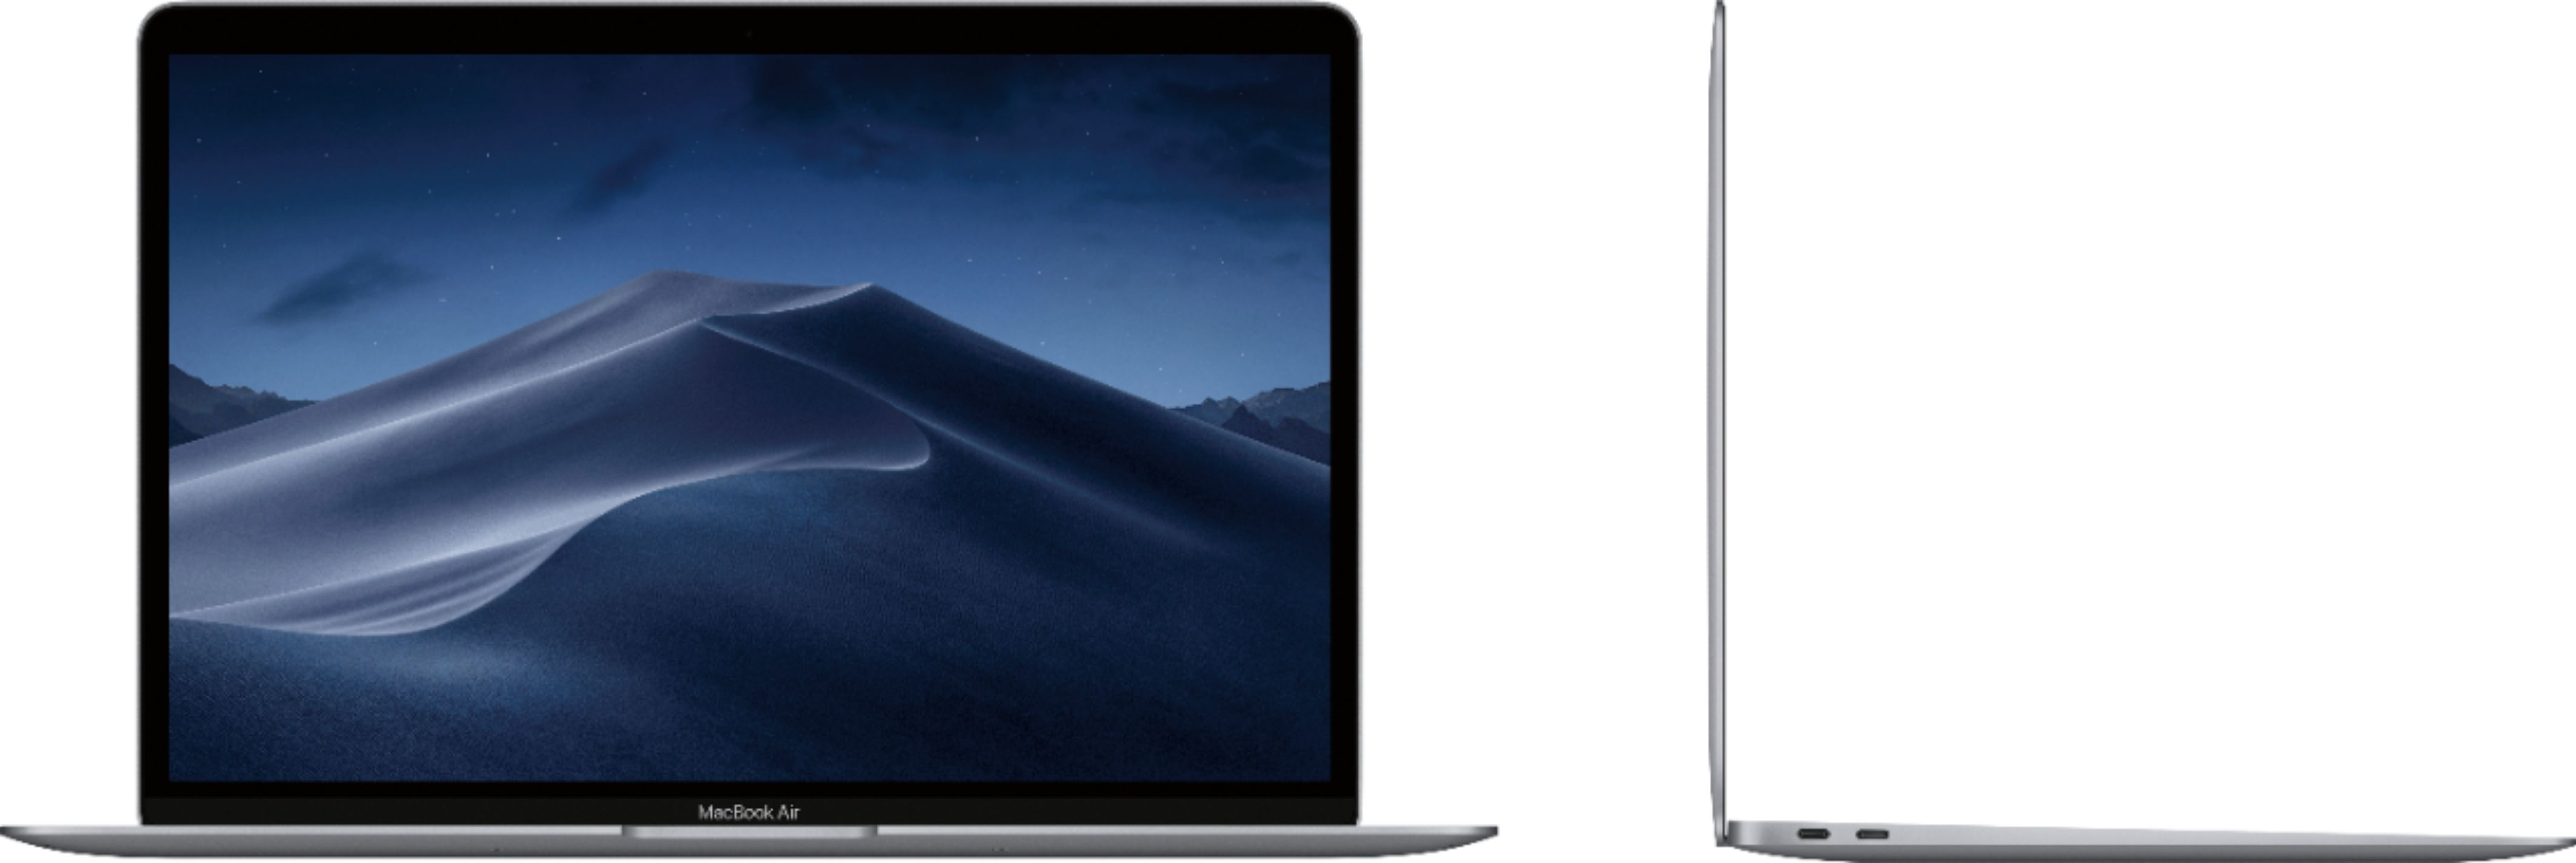 """Alt View Zoom 12. Apple - MacBook Air 13.3"""" Laptop with Touch ID - Intel Core i5 - 16GB Memory - 512GB Solid State Drive - Space Gray."""